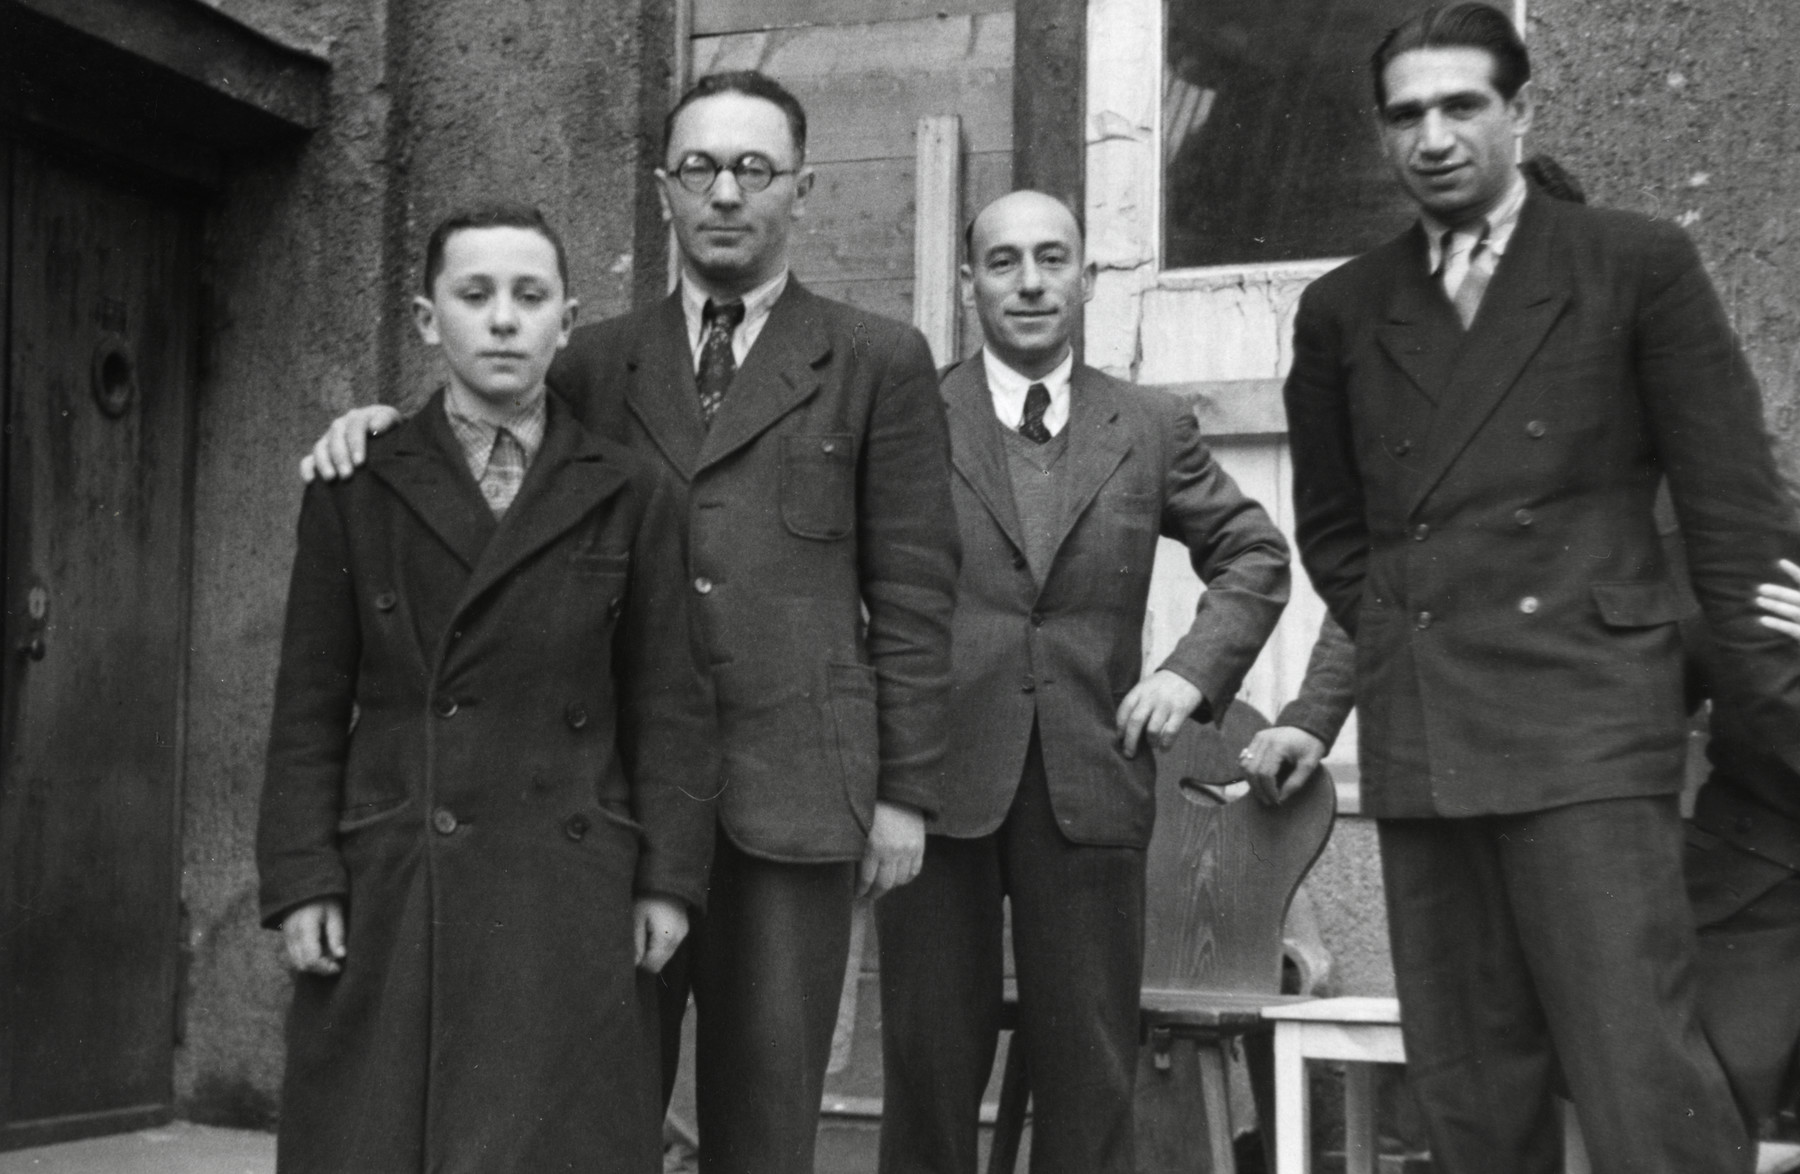 Shalom Kaplan poses with his father and other staff from the Unzer Weg newspaper.